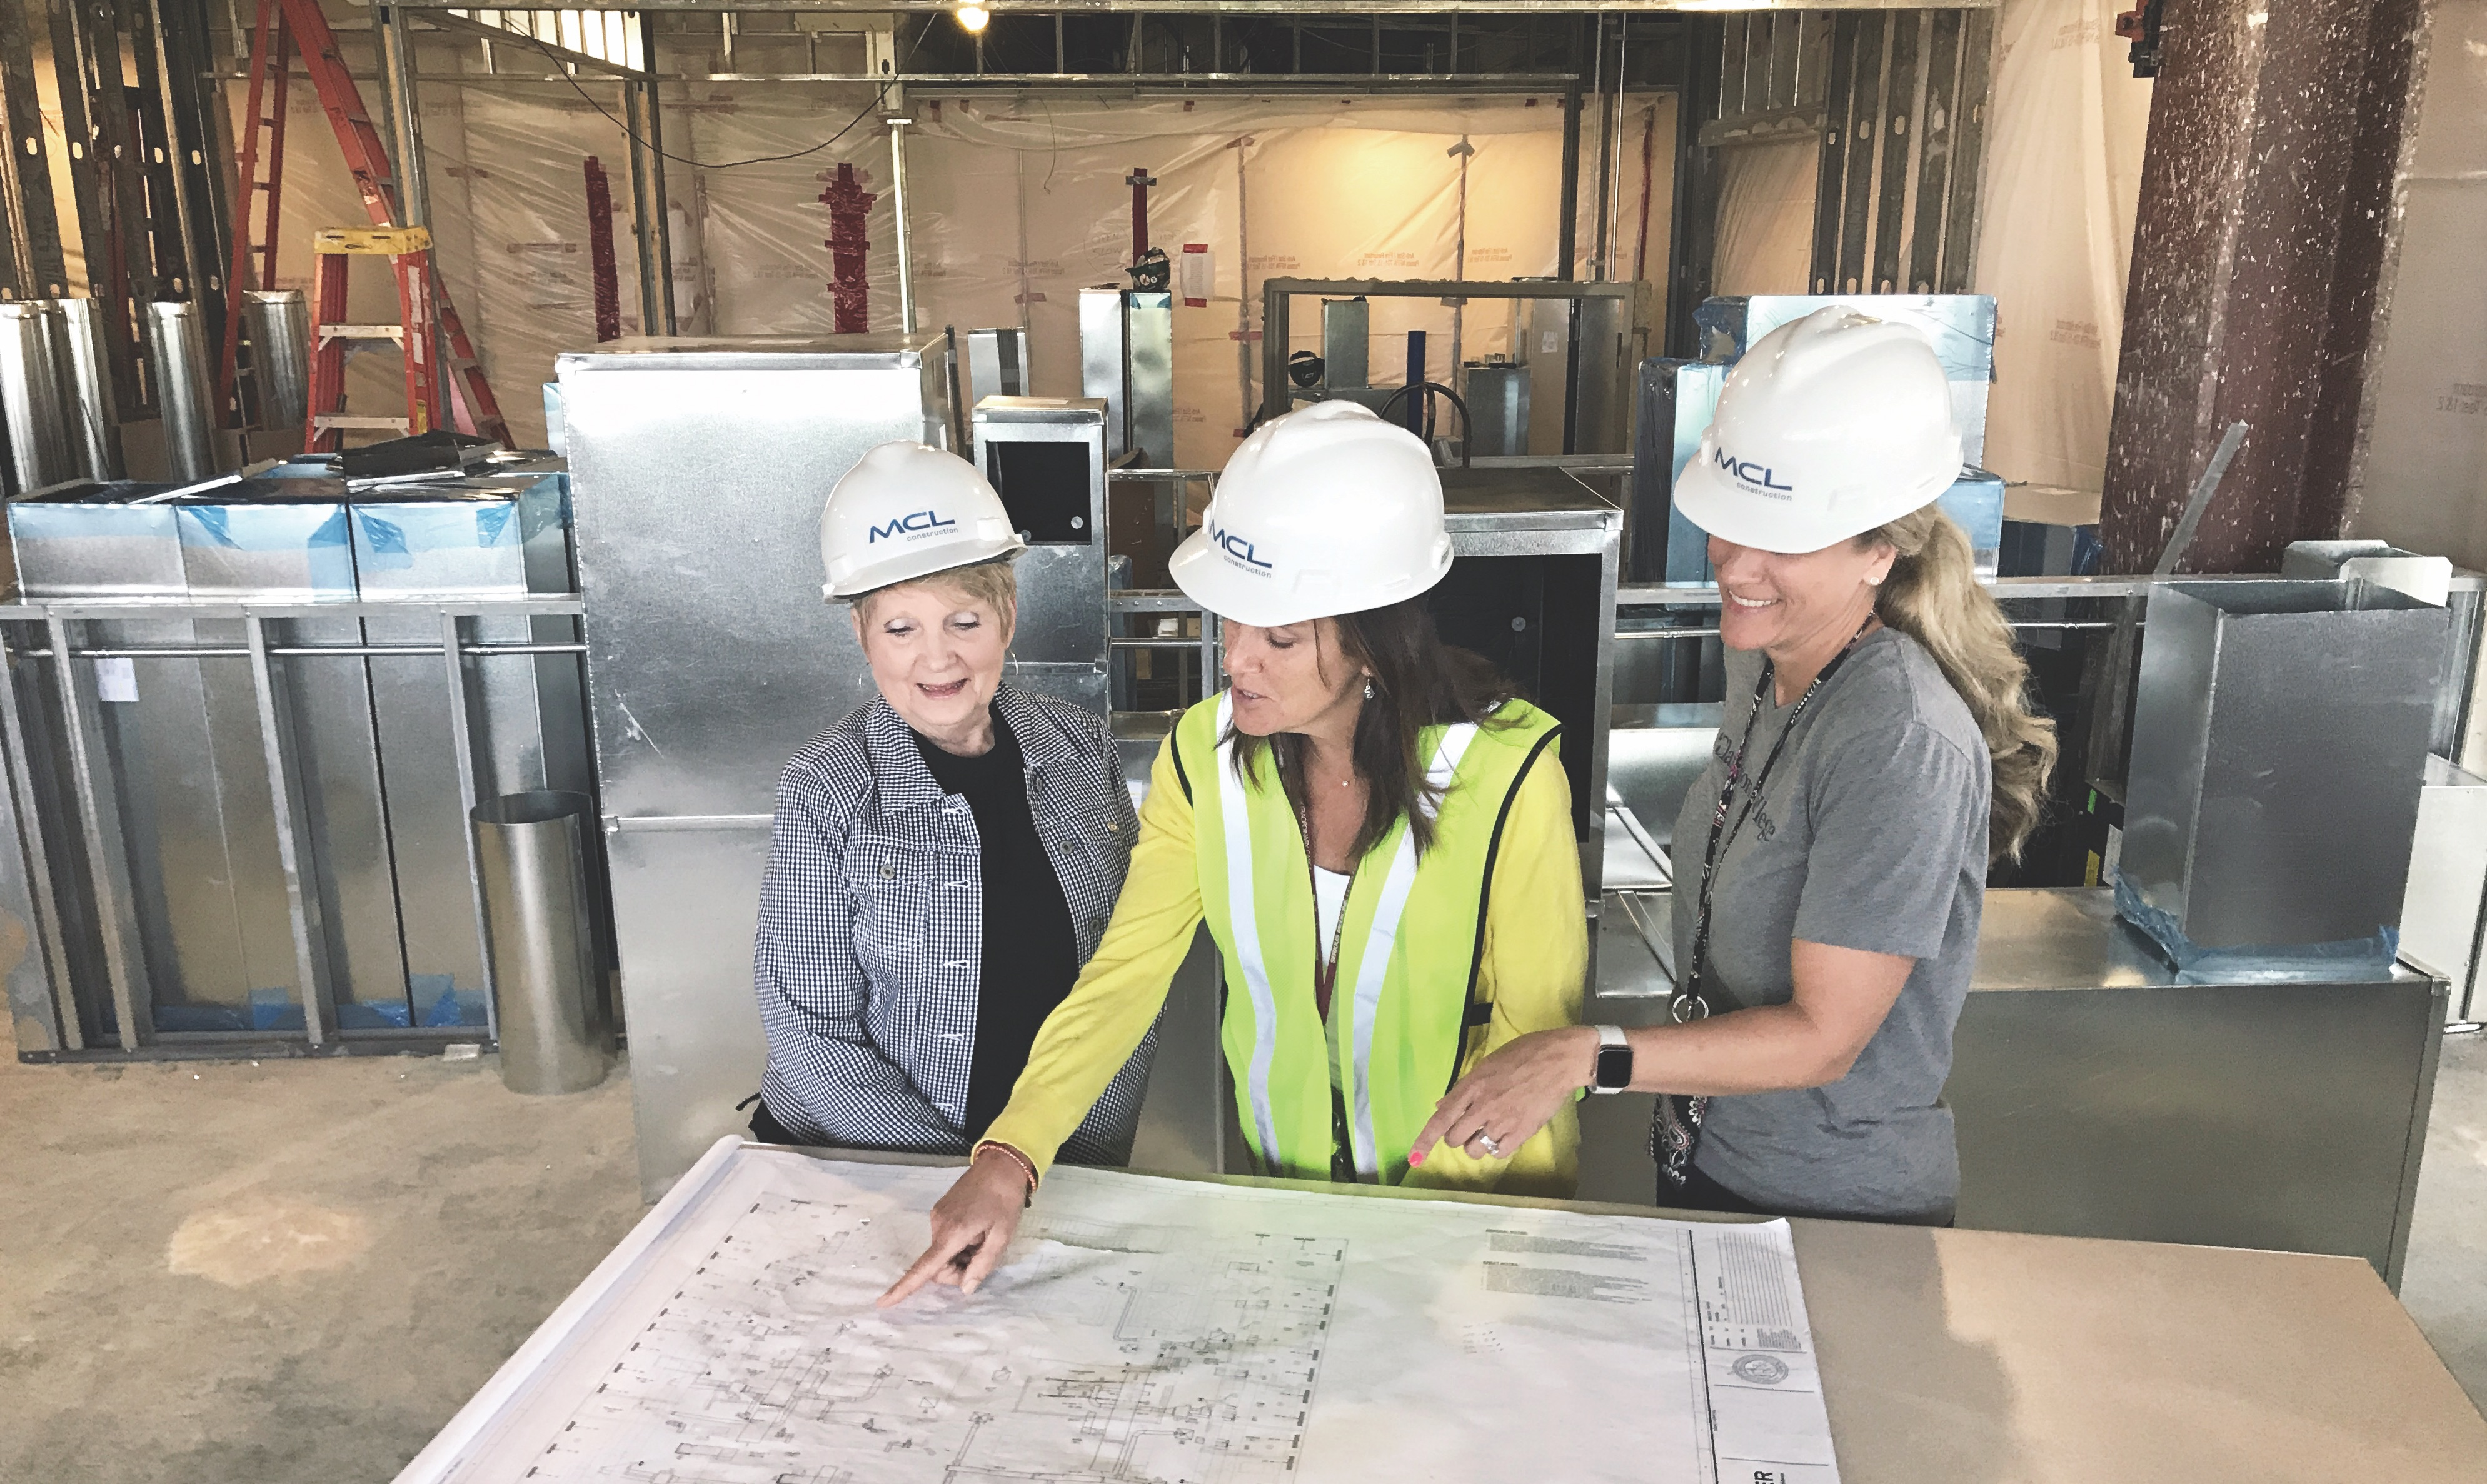 Marsha Cravens, Julie Lawlor and Jennifer Renken discuss the Lab's blueprints.